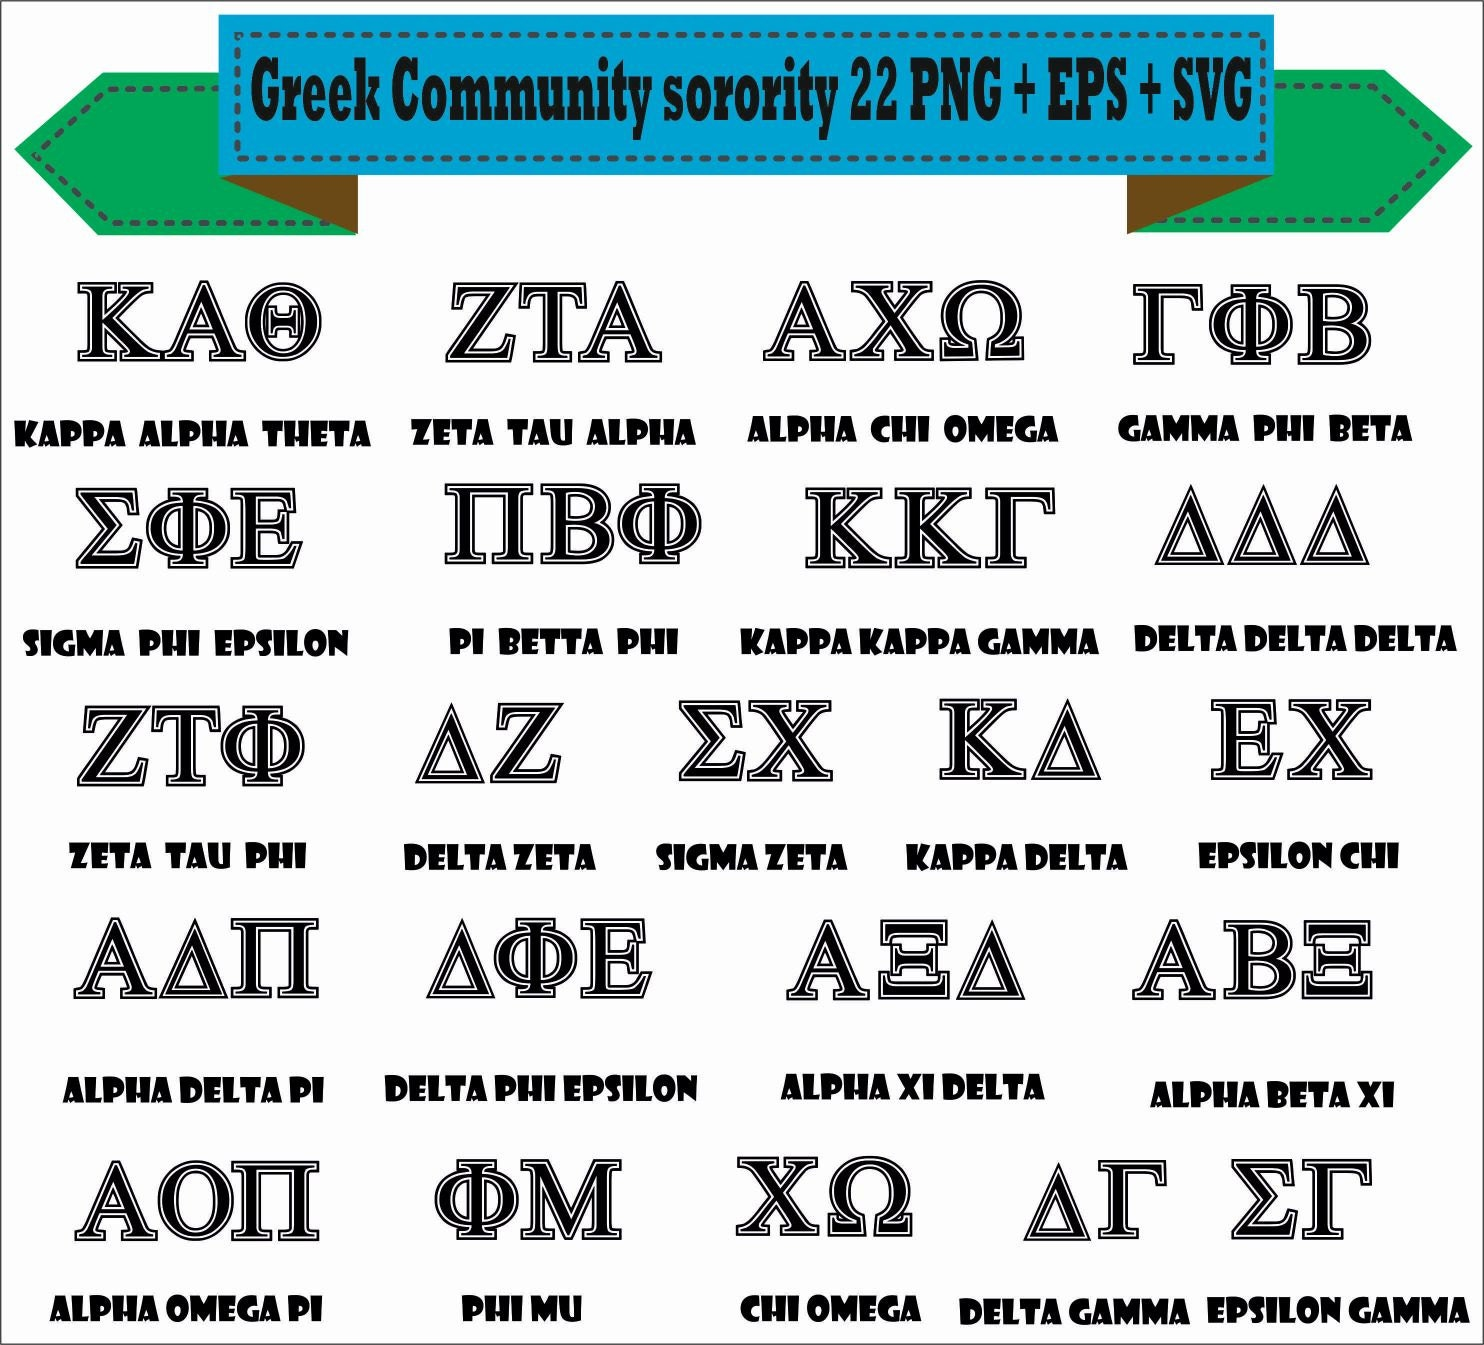 Alphabet community sorority symbol house greek play pack this is a digital file biocorpaavc Images